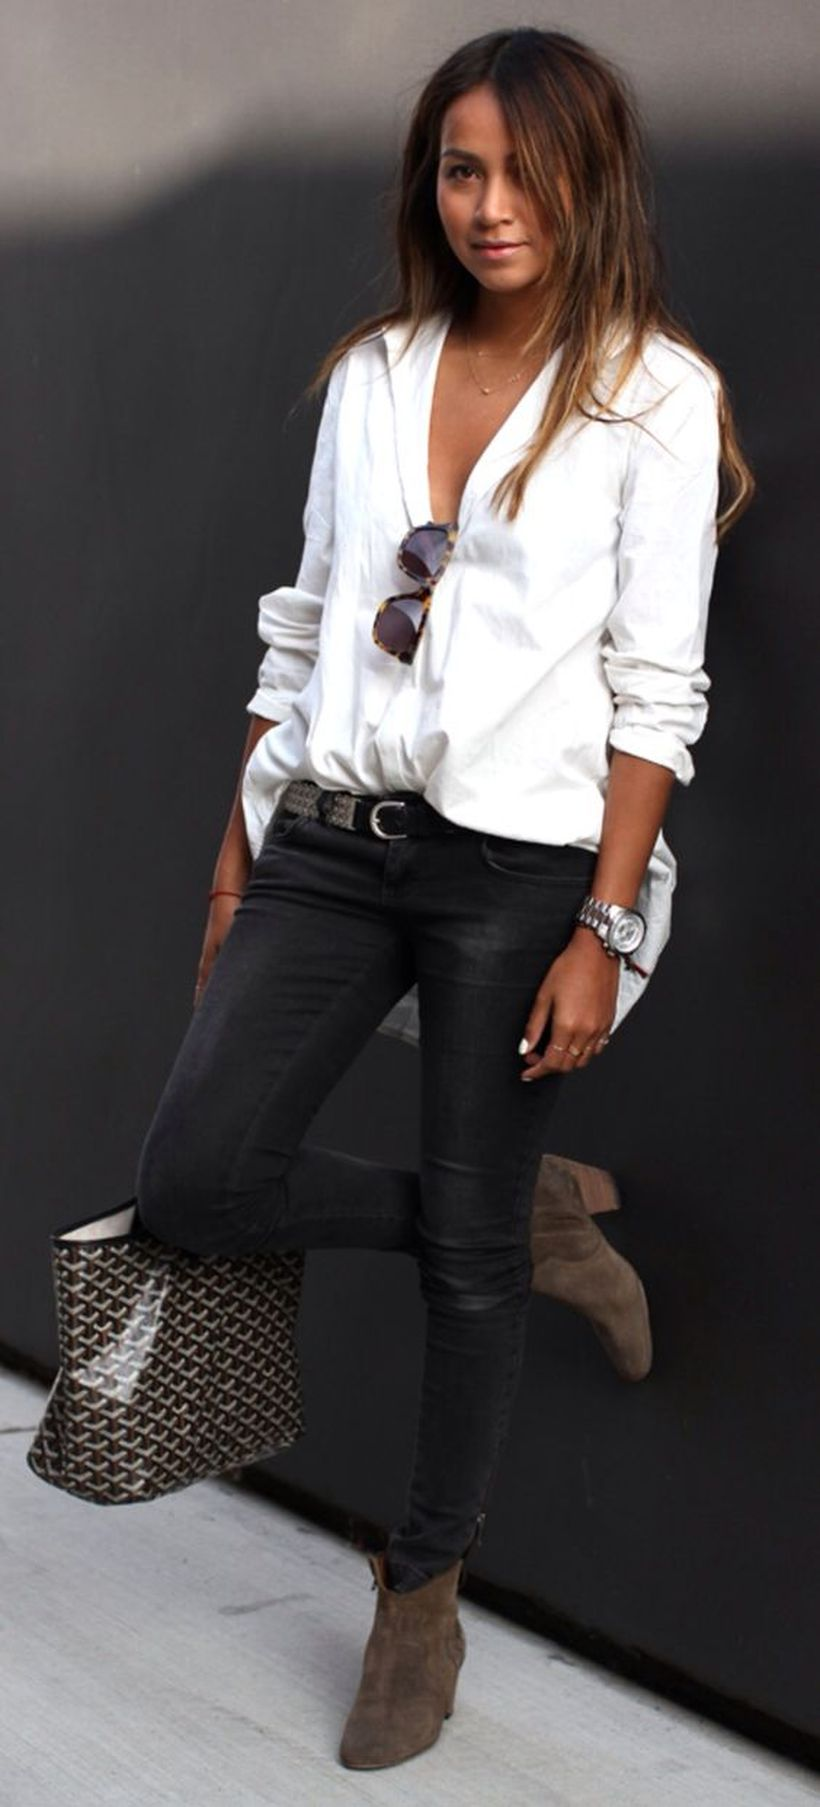 Awesome oversized white shirt outfit style ideas 18